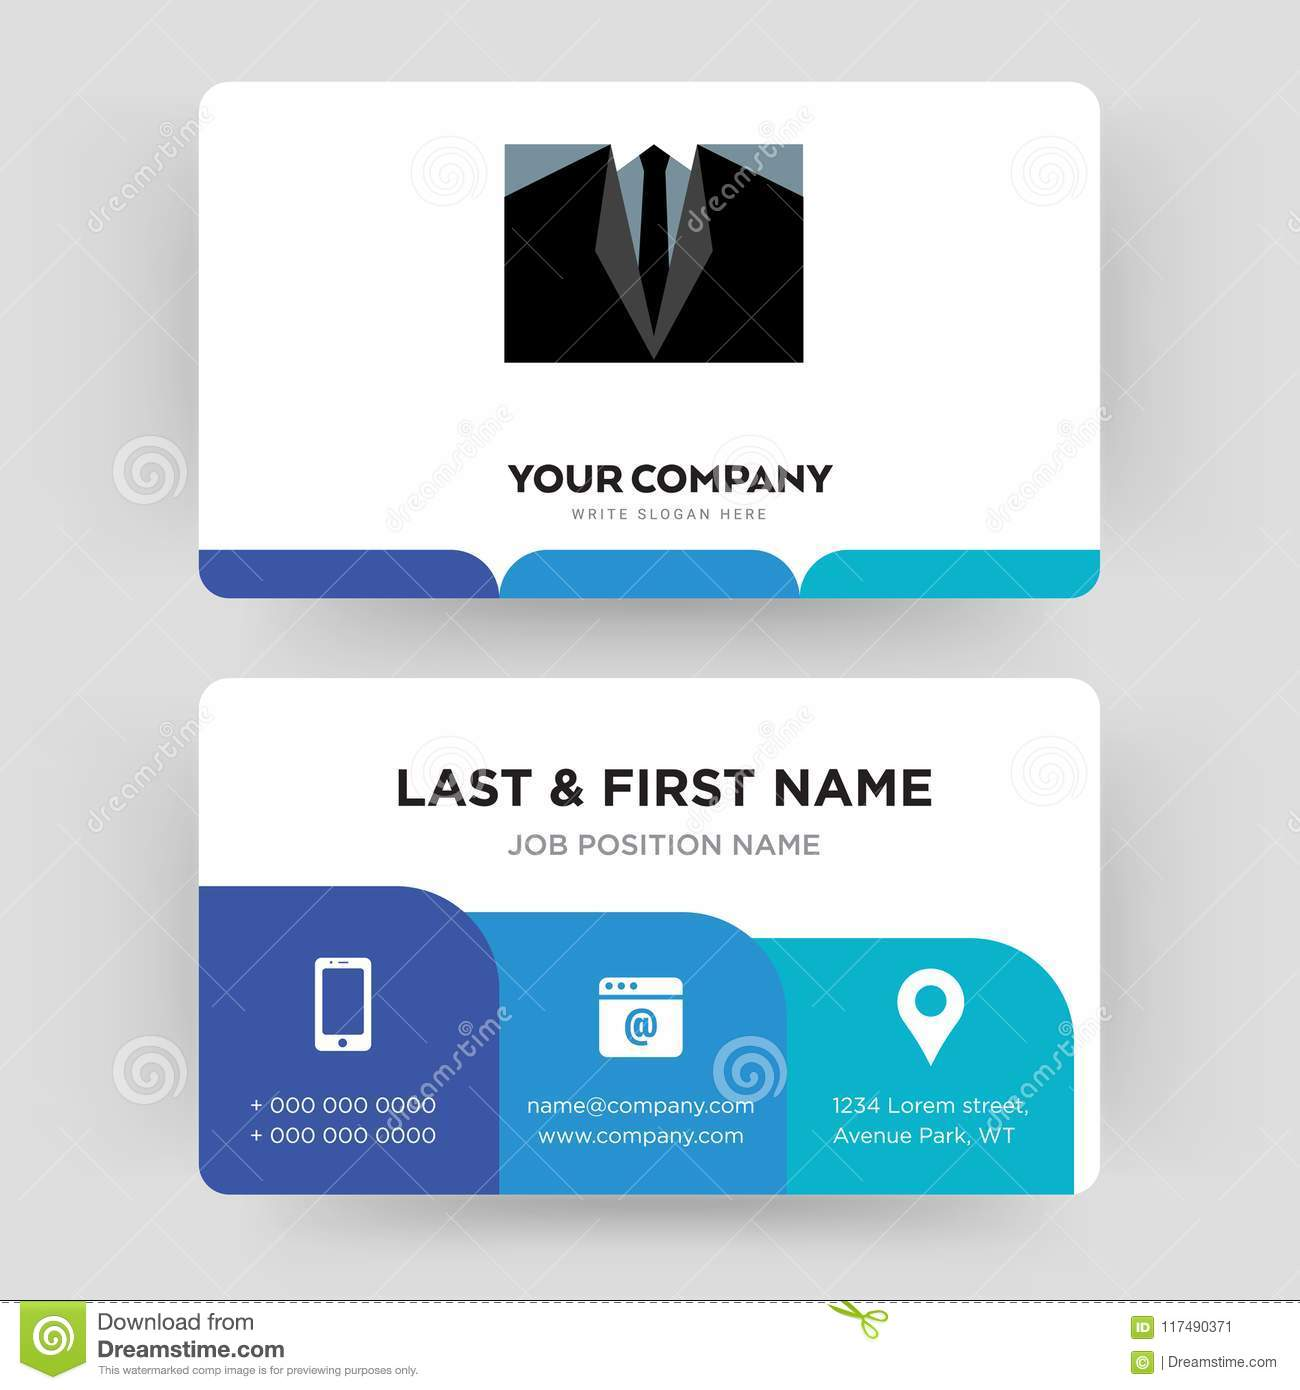 Dress Code Business Card Design Template Visiting For Your Company